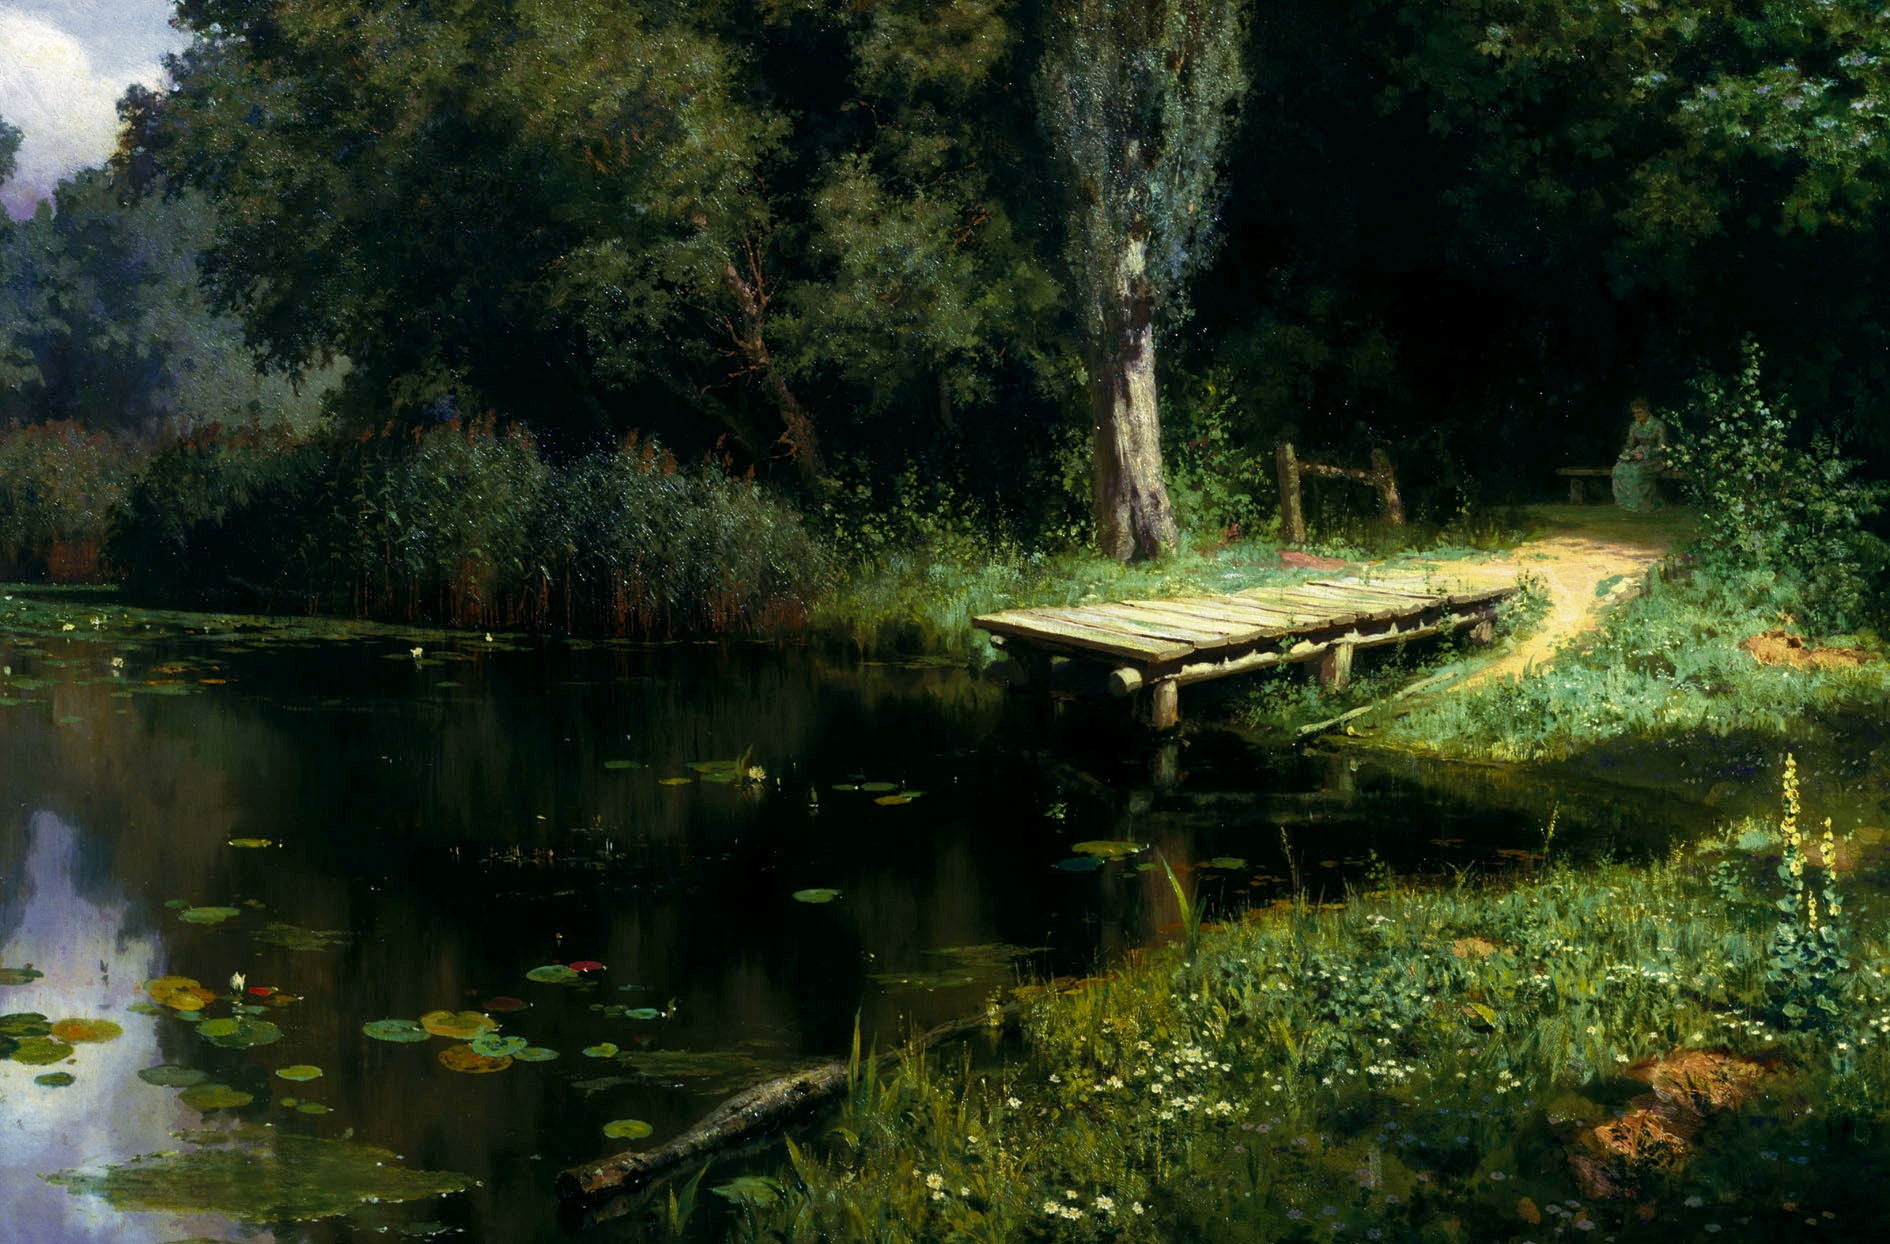 70928 download wallpaper Nature, Pier, Lake, Water Lilies, Trees, Painting, Art, Polenov, Overgrown Pond screensavers and pictures for free